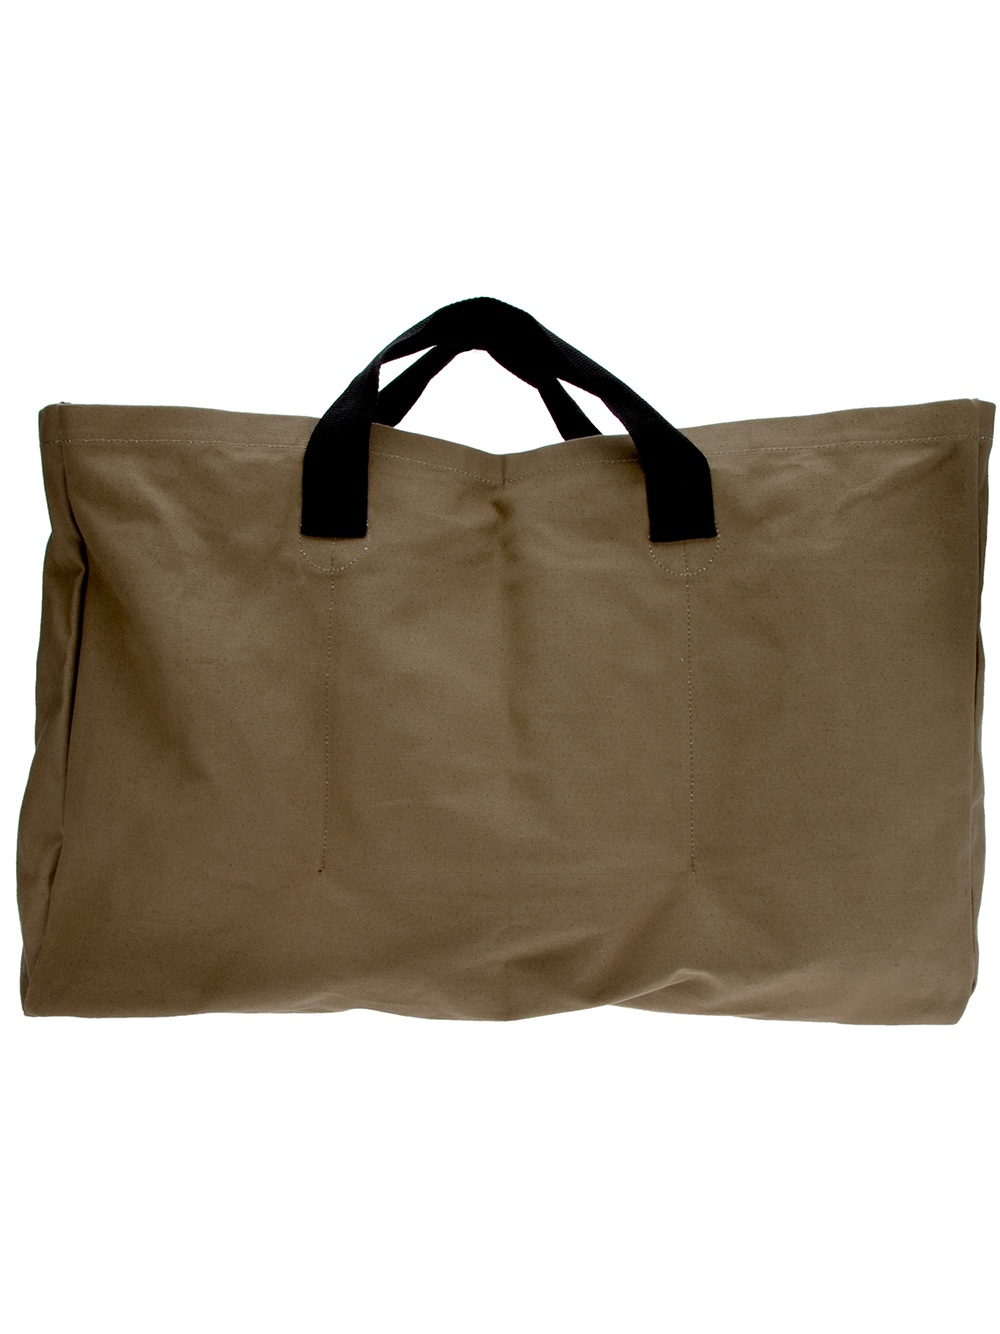 Comme des garçons Large Canvas Tote in Brown for Men | Lyst